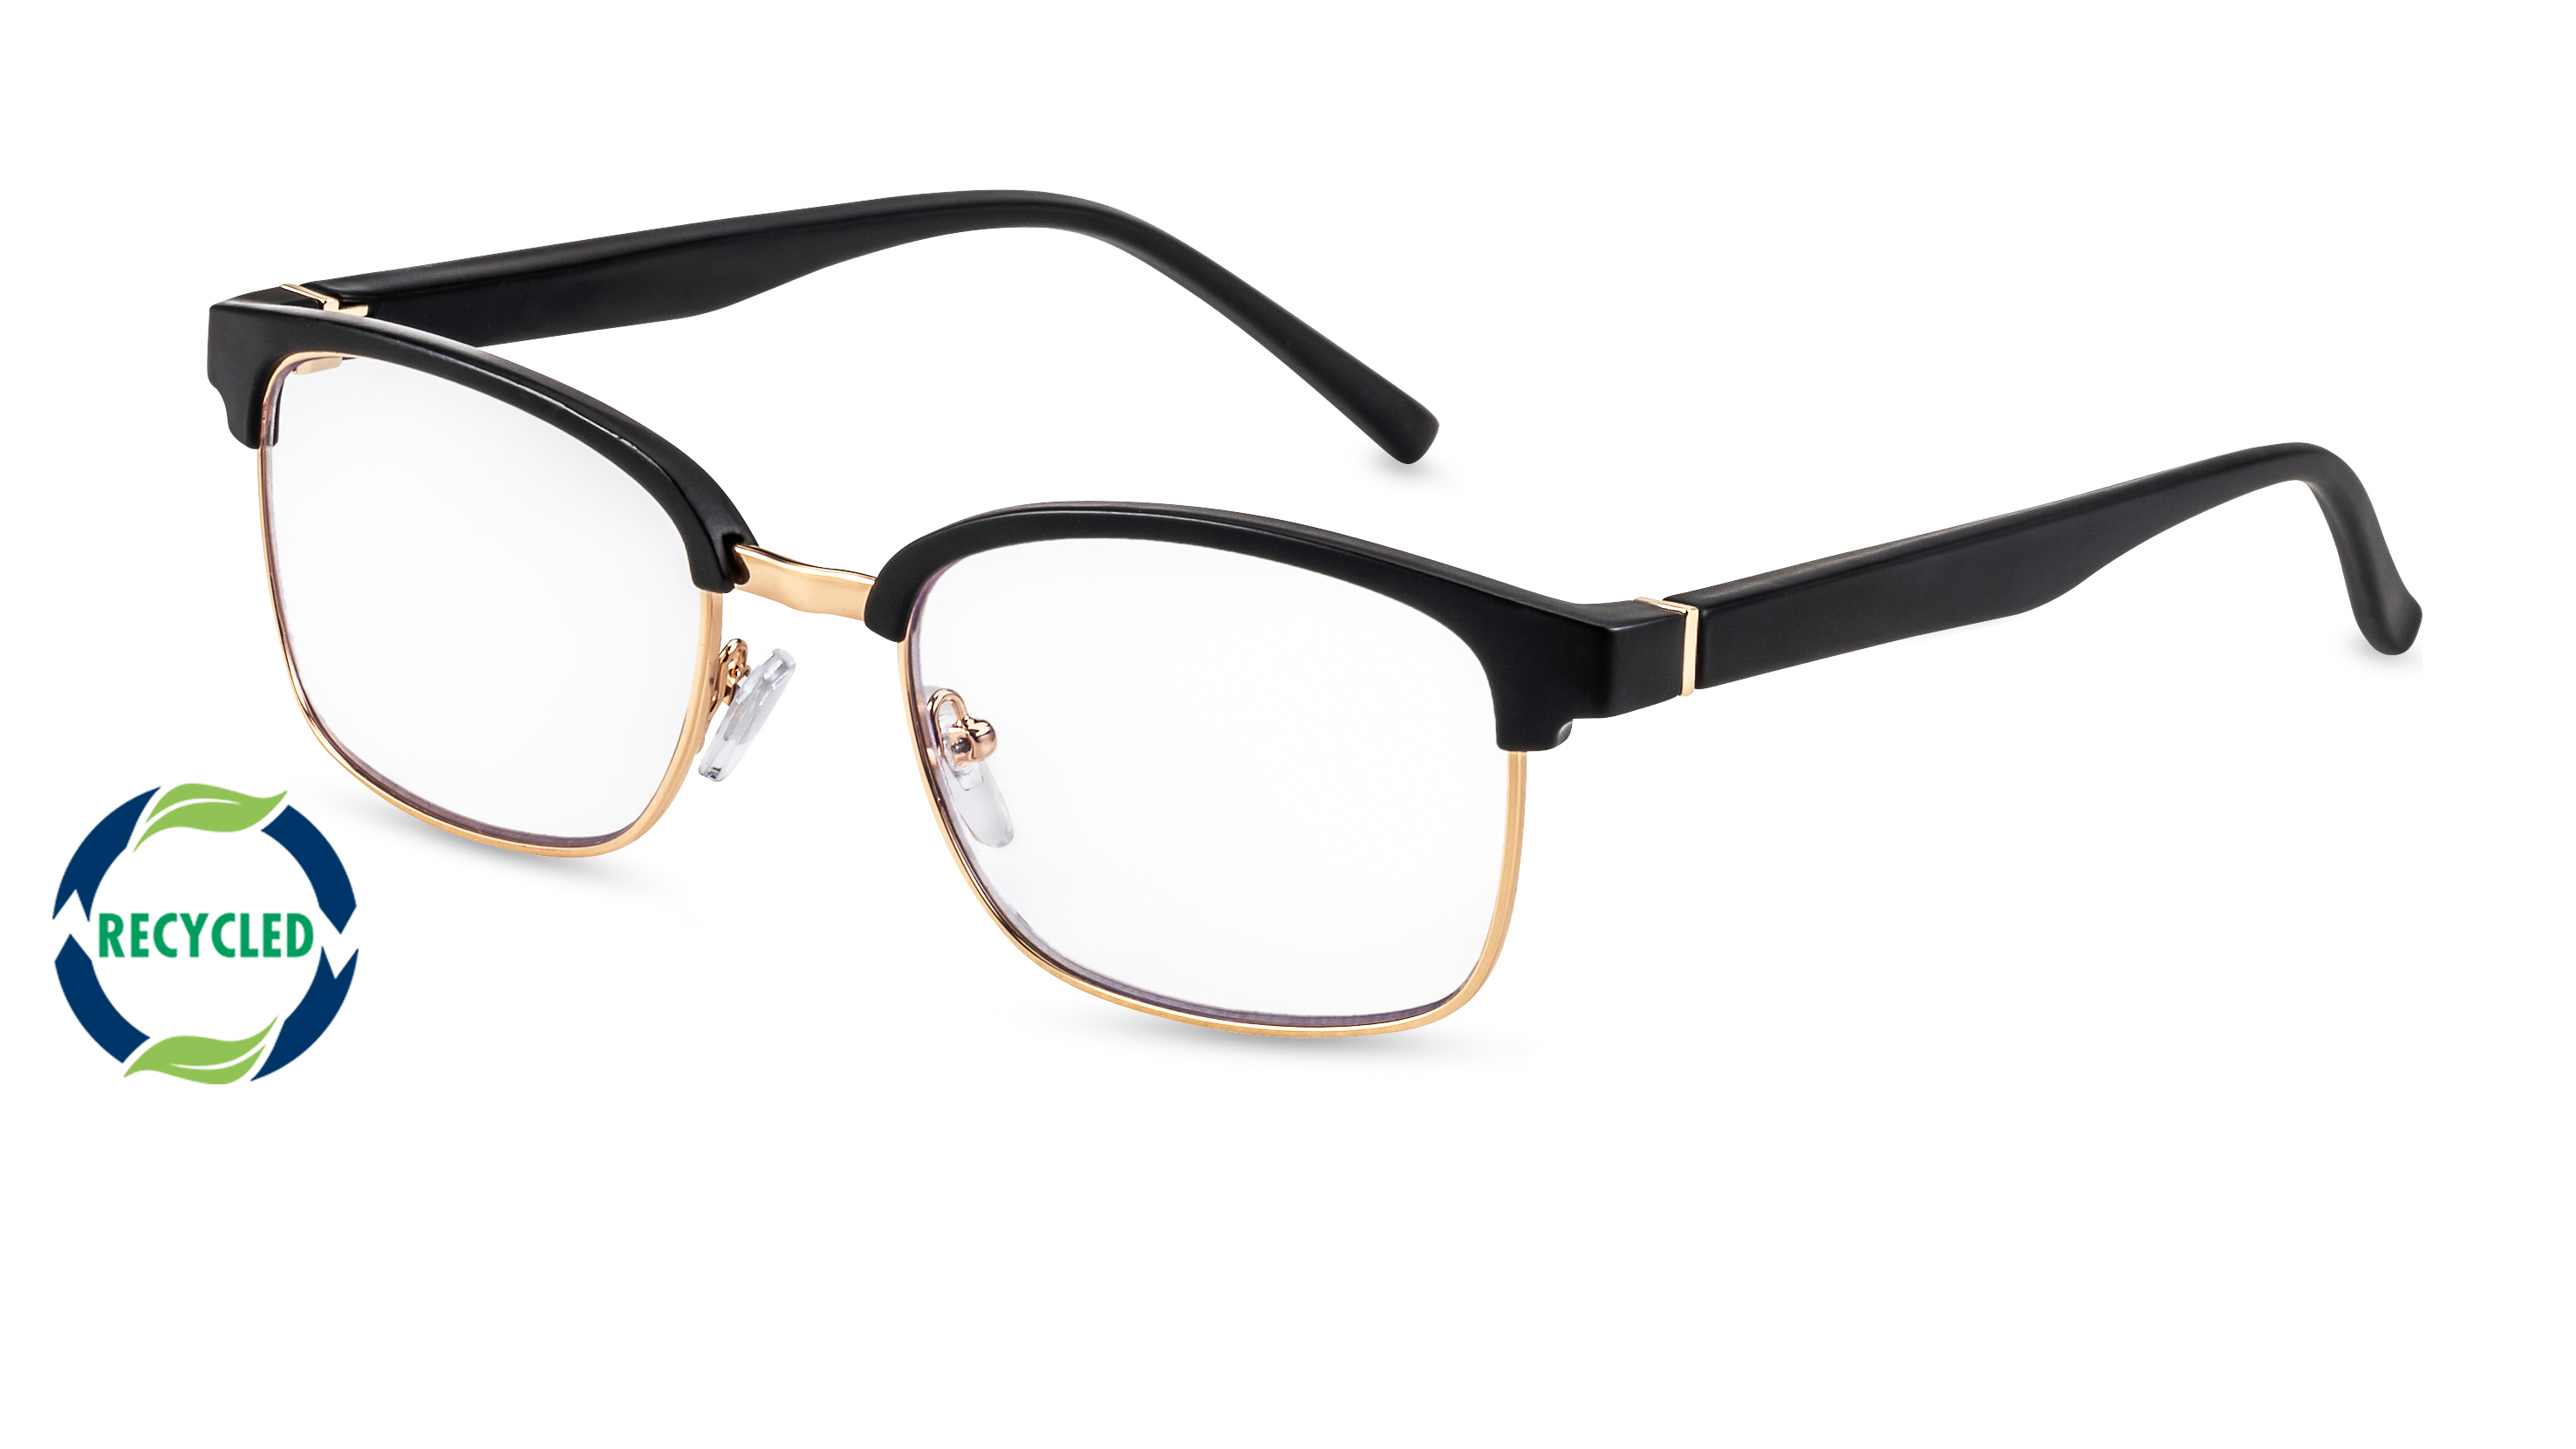 Filtral recycling reading glasses palermo black-gold